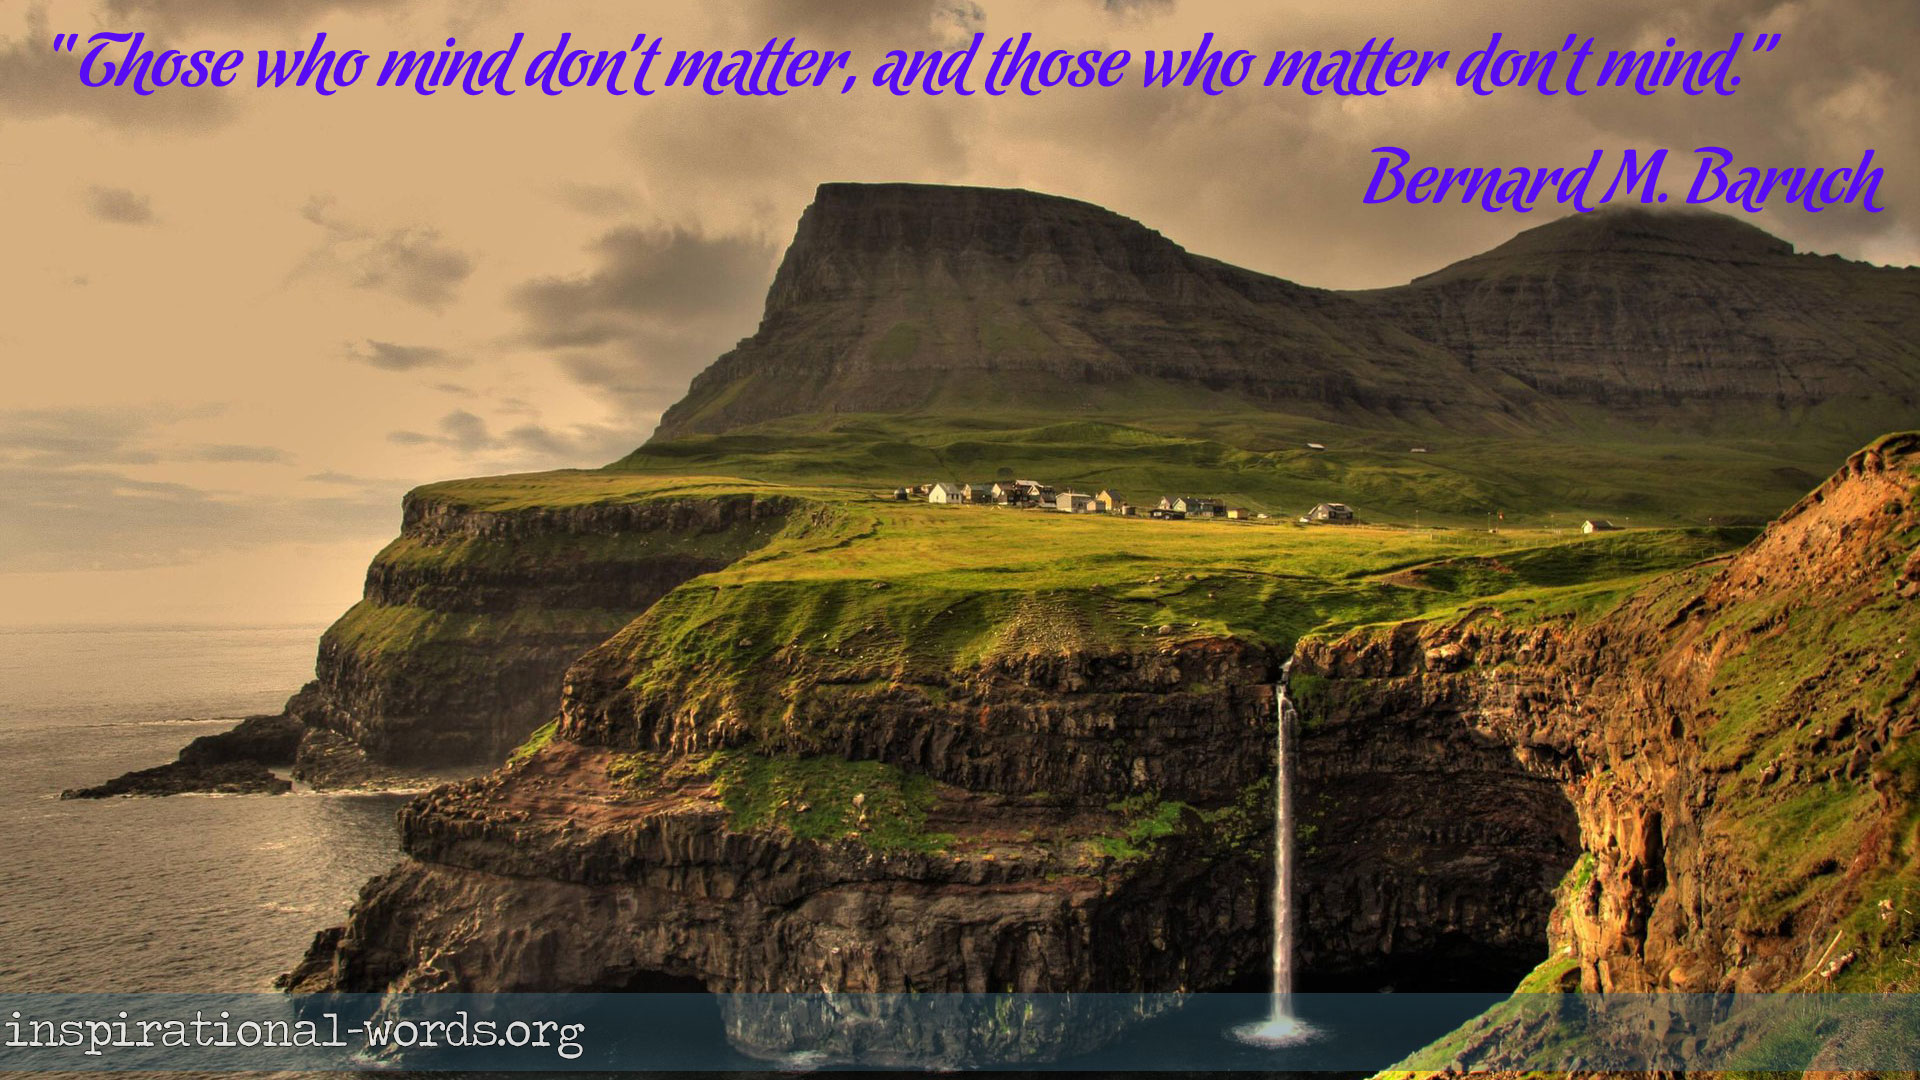 Inspirational Wallpaper Quote by Bernard M. Baruch